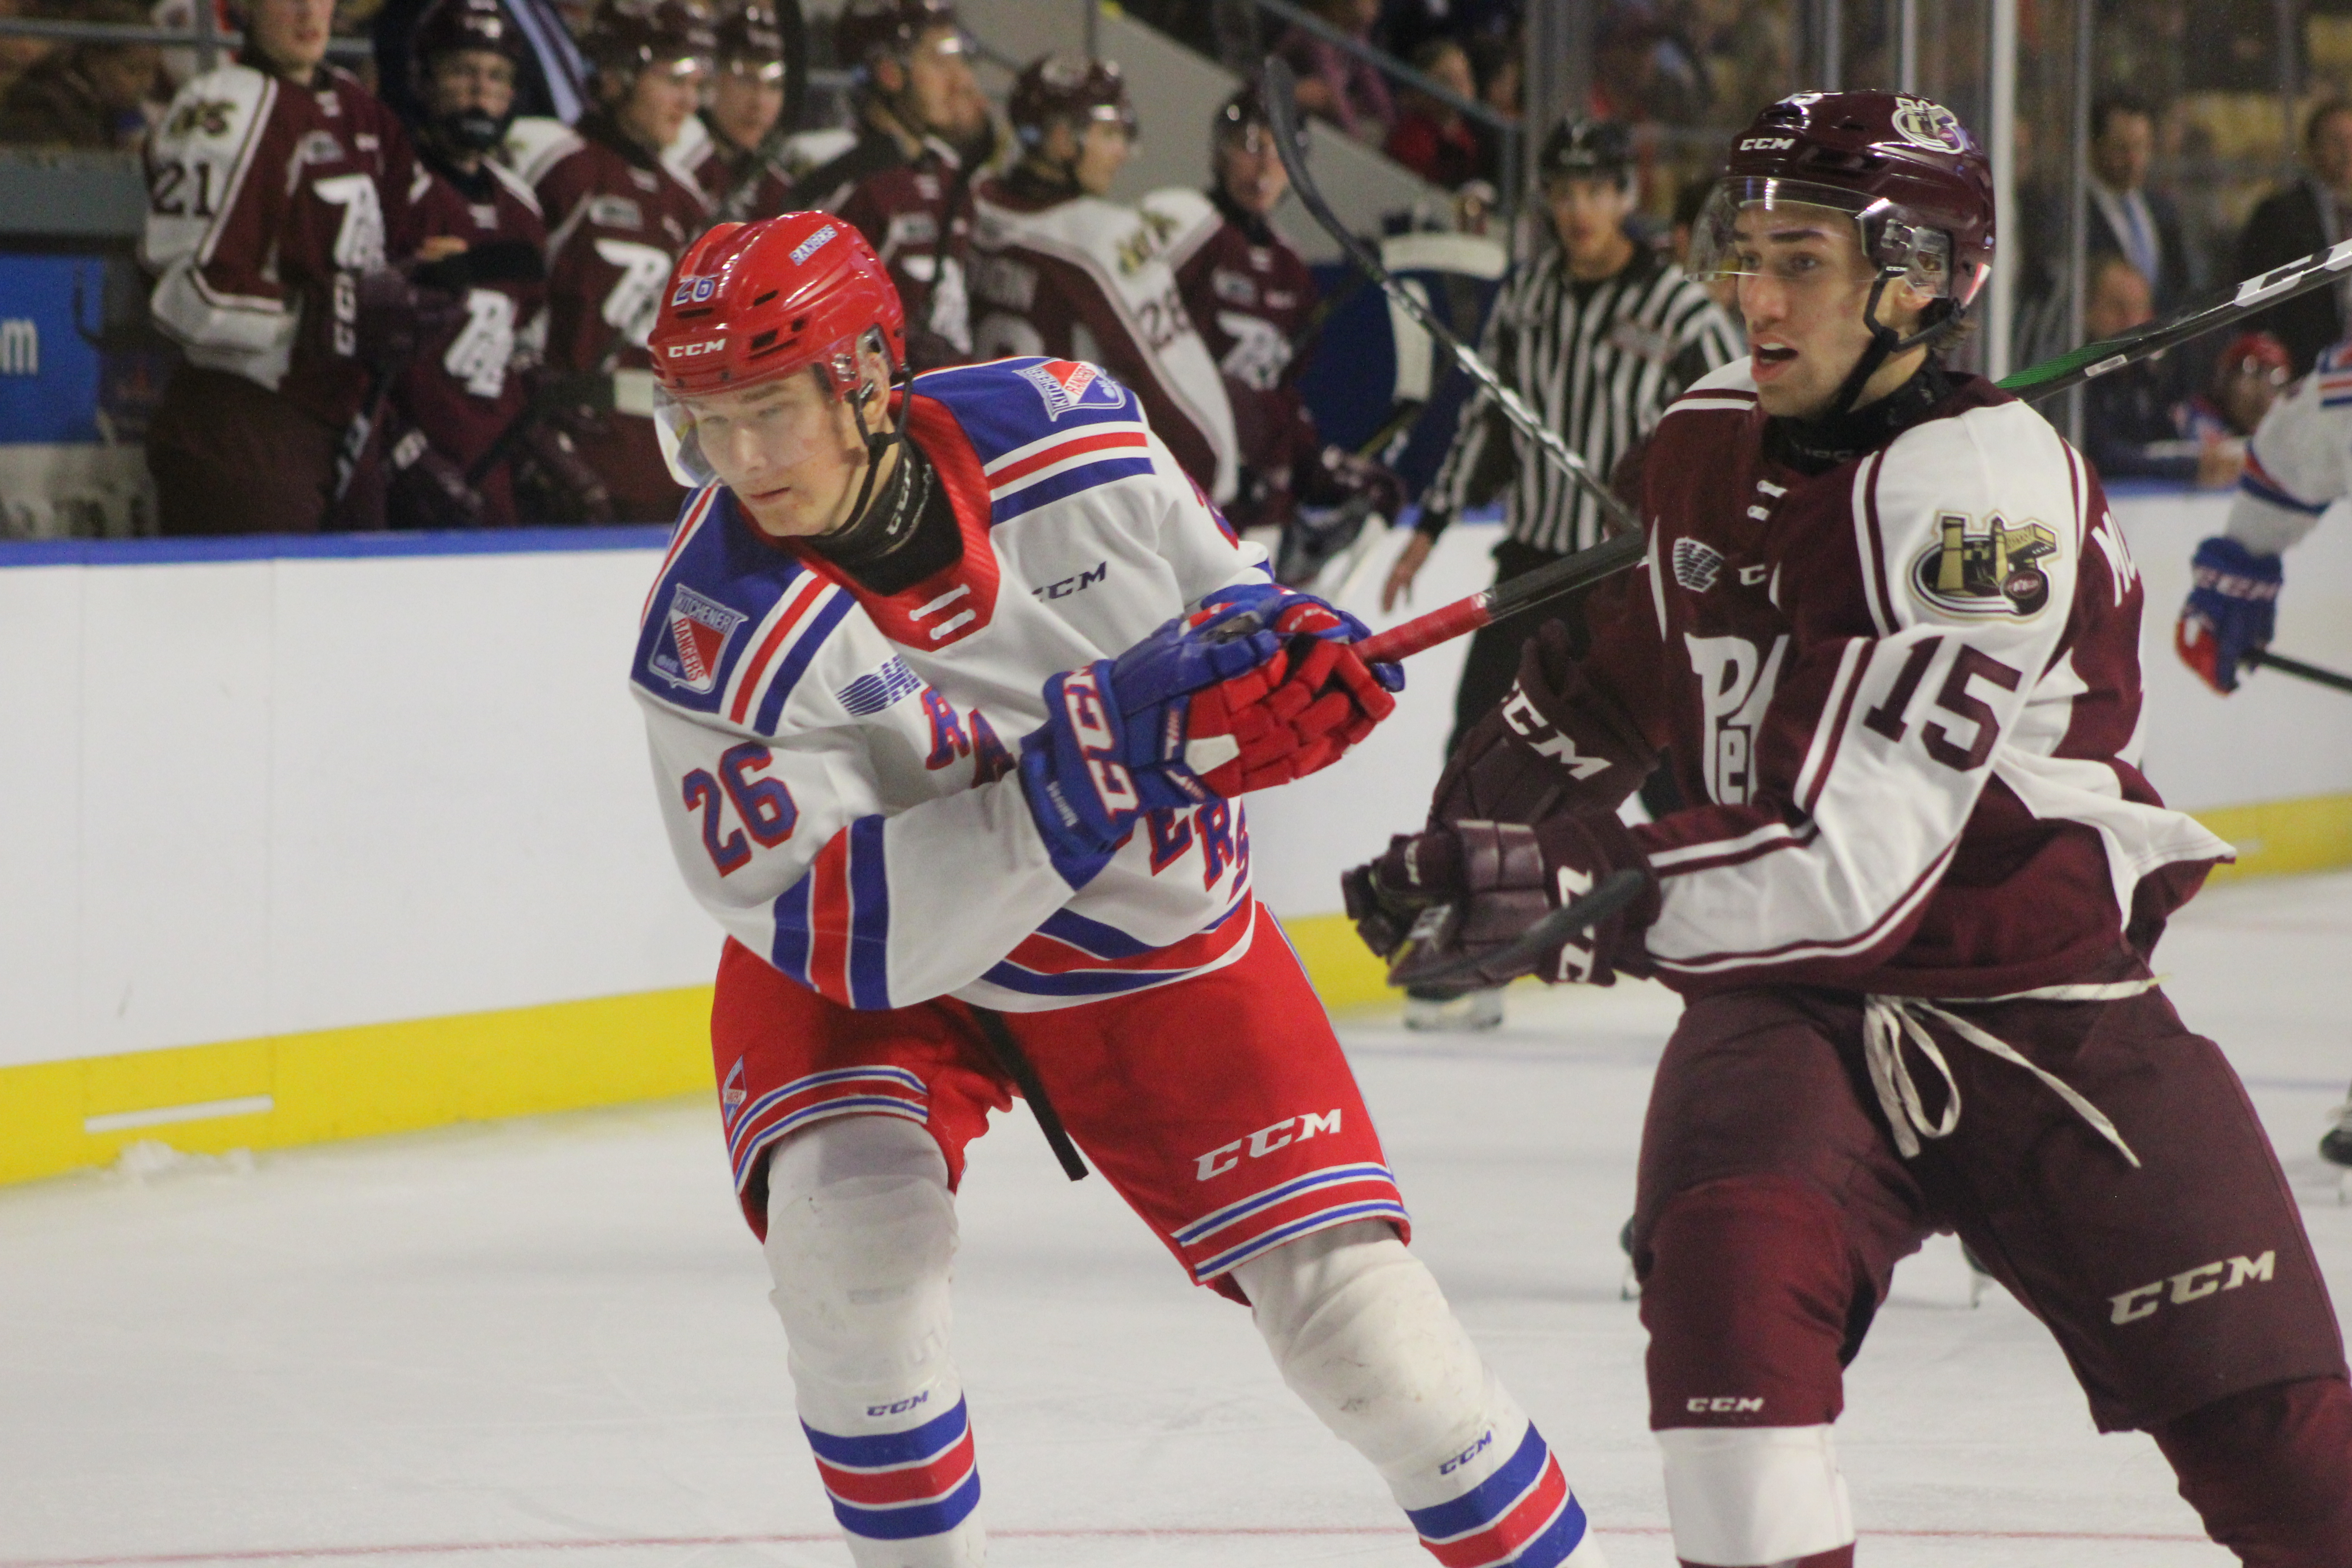 Pair of Rangers on 'Players to Watch' list ahead of NHL draft